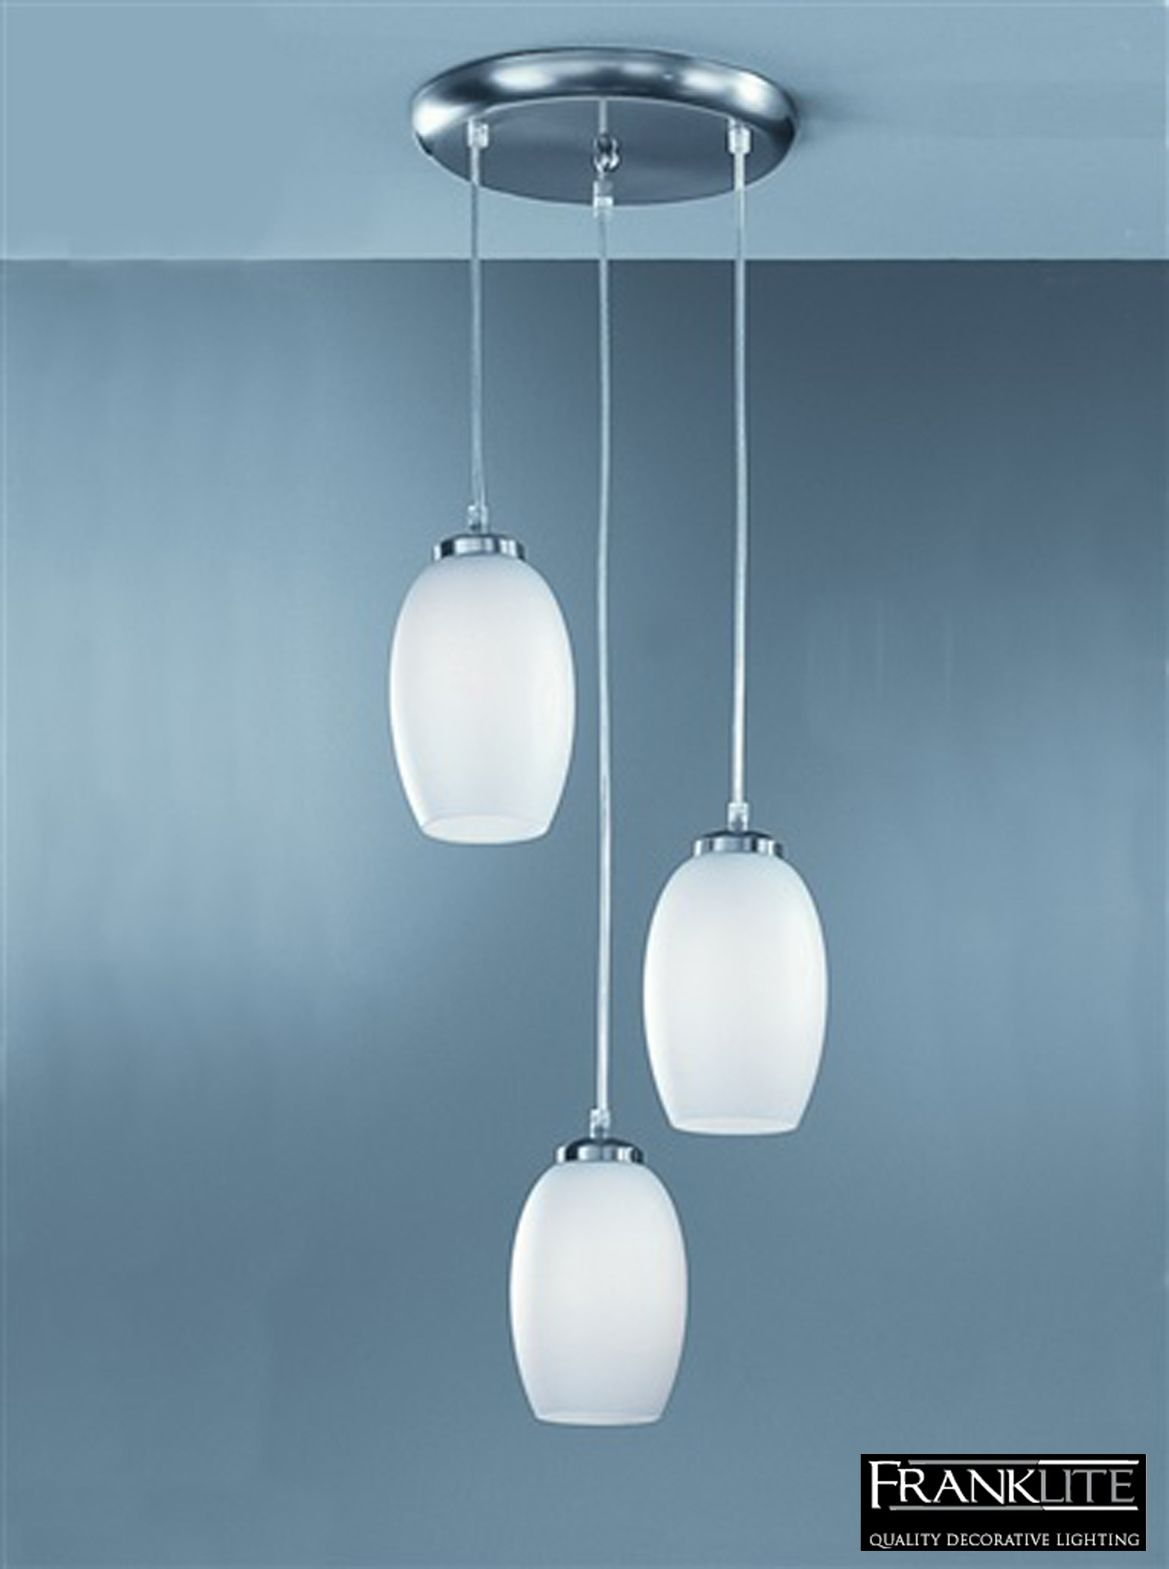 Franklite Matt Opal Glass & Satin Nickel, Ø 330mm 3 Light Pendant Ceiling Fitting - CO9573/448 None